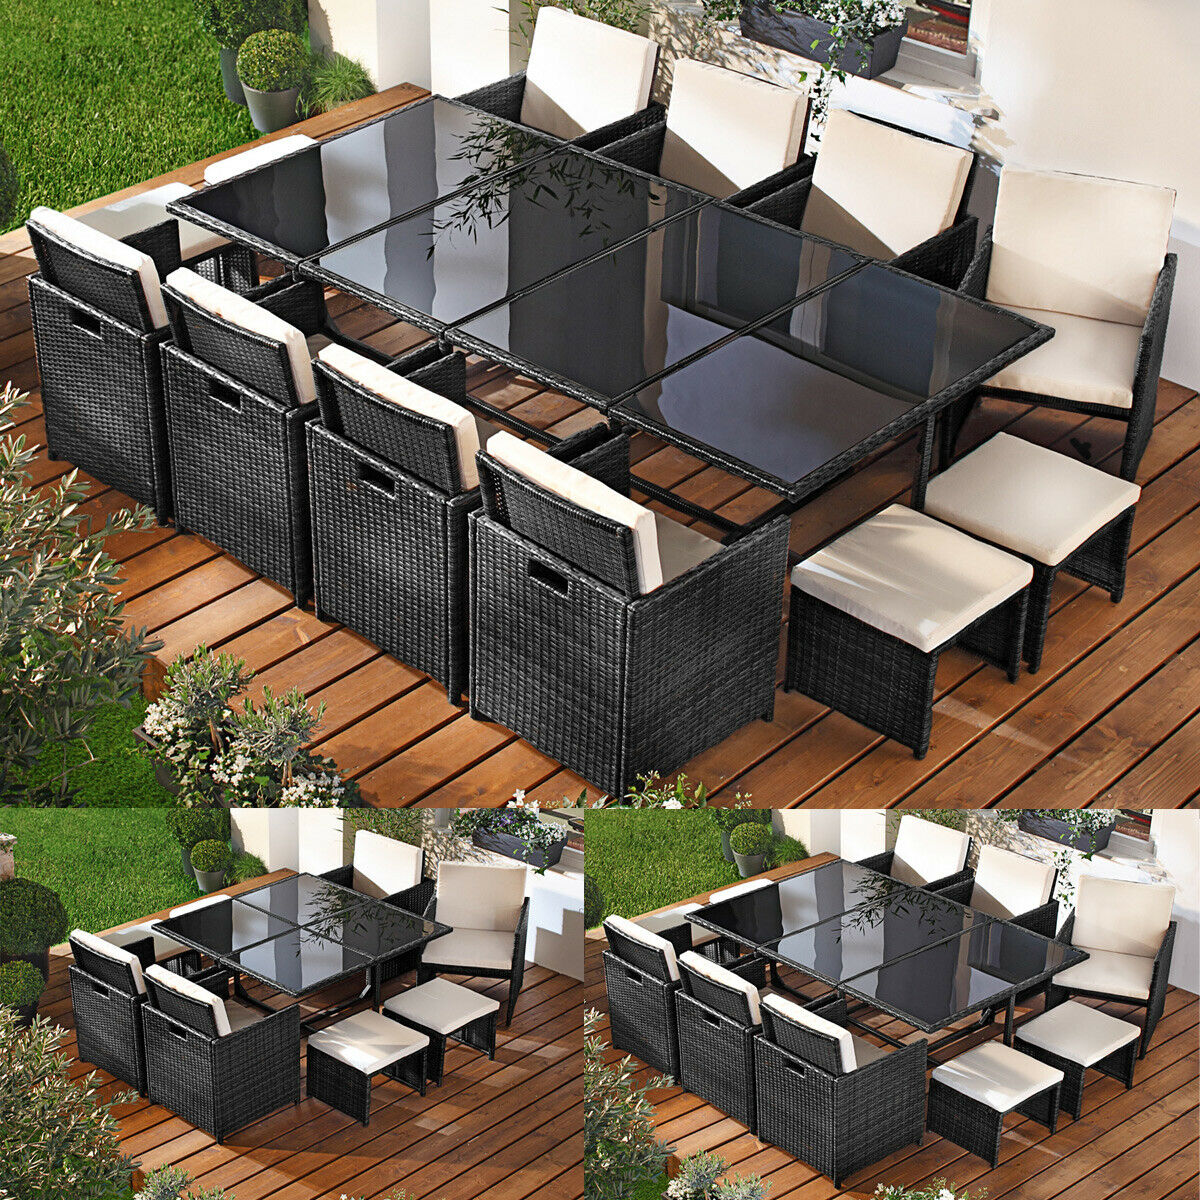 poly rattan sitzgarnitur gartenm bel gartengarnitur gartenset sitzgruppe lounge eur 399 00. Black Bedroom Furniture Sets. Home Design Ideas